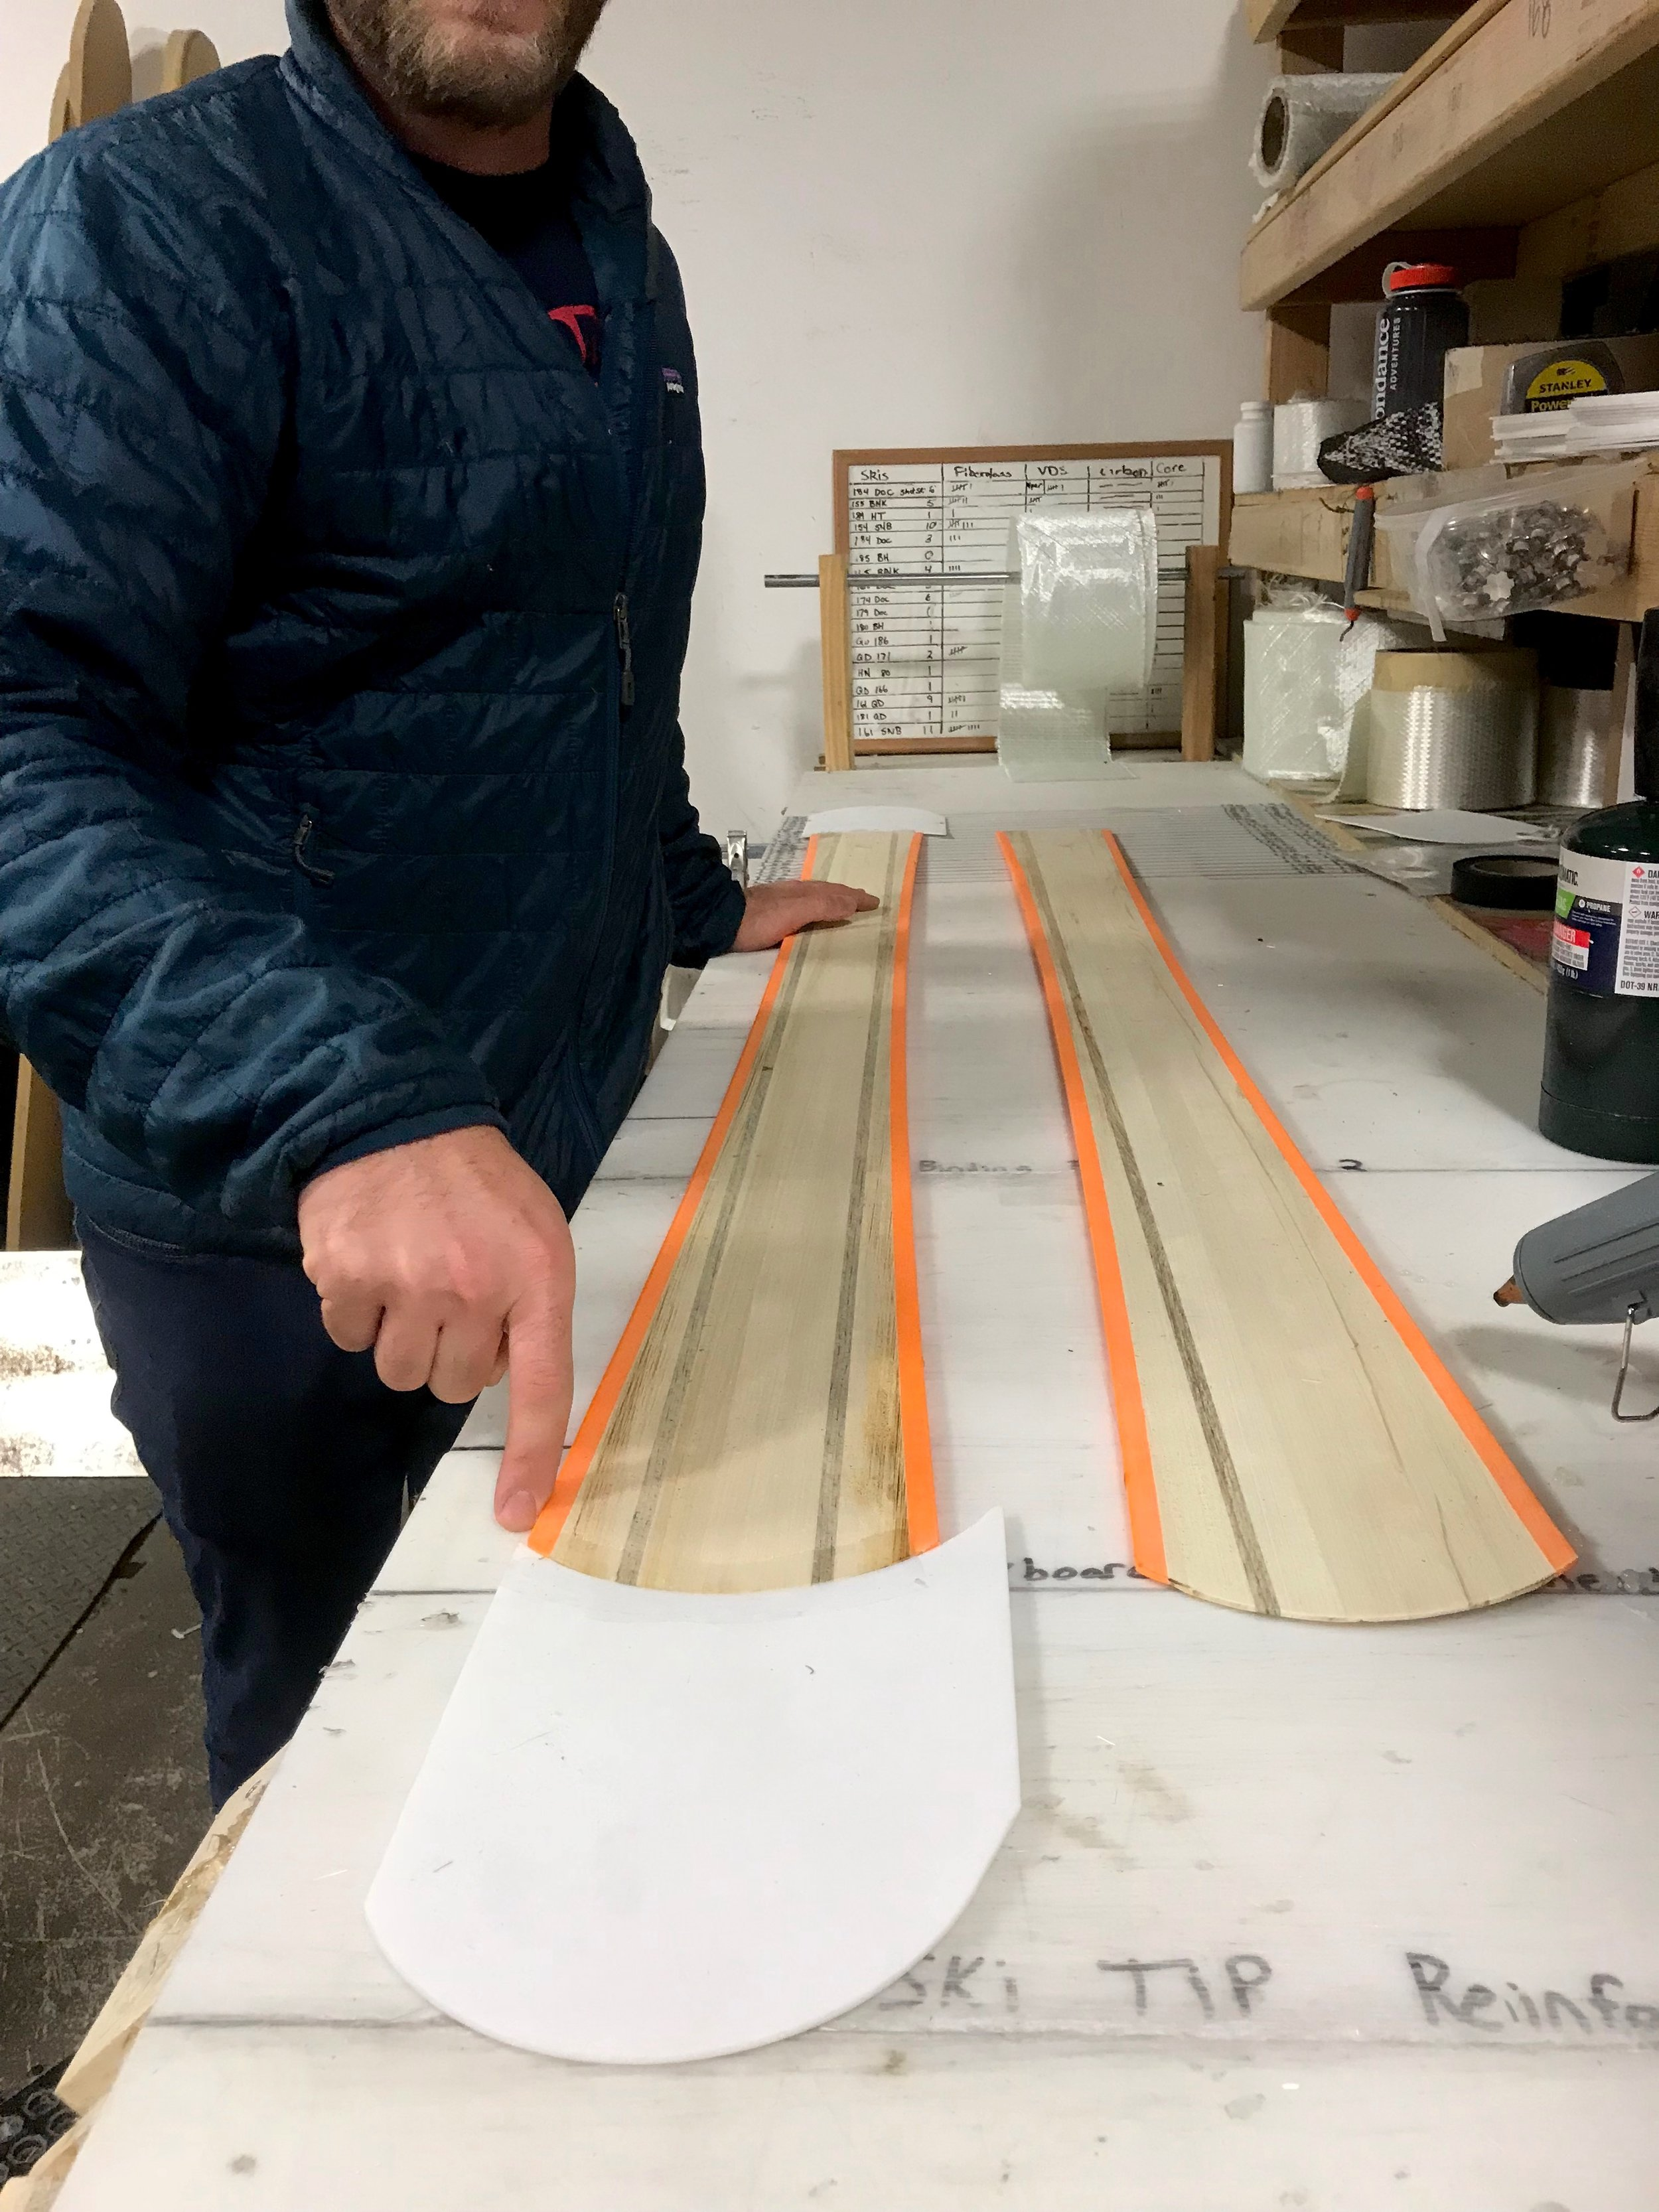 No surprise here - turns out every pair of handmade skis is the product of many hours or work by a whole team of dudes in the Meier workshop.